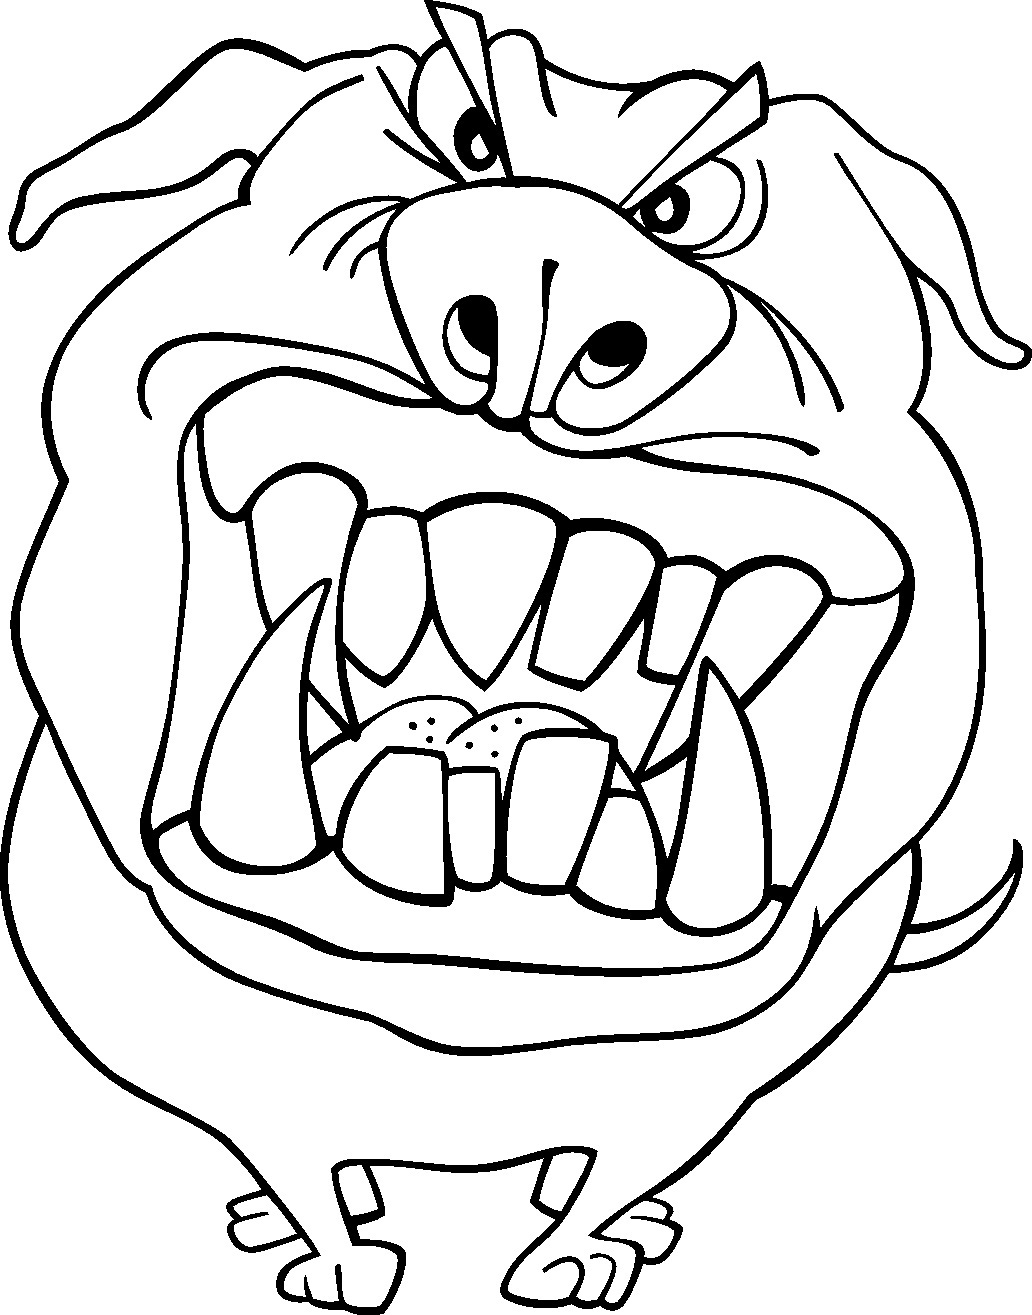 Funny Angry Dog Coloring Page